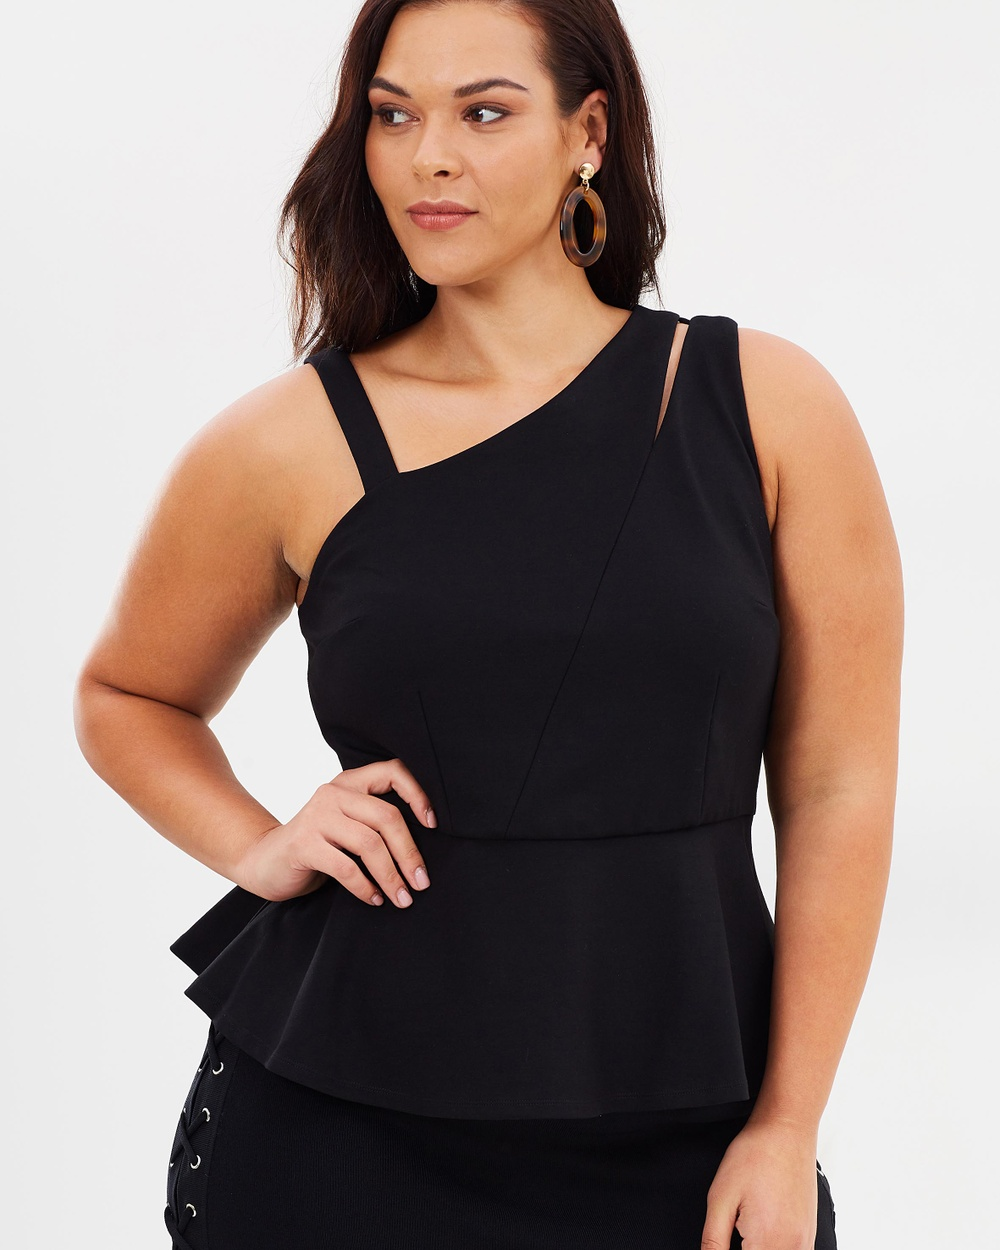 Rebel Wilson x Angels Asymmetrical Cut Top Tops Black Asymmetrical Cut Top